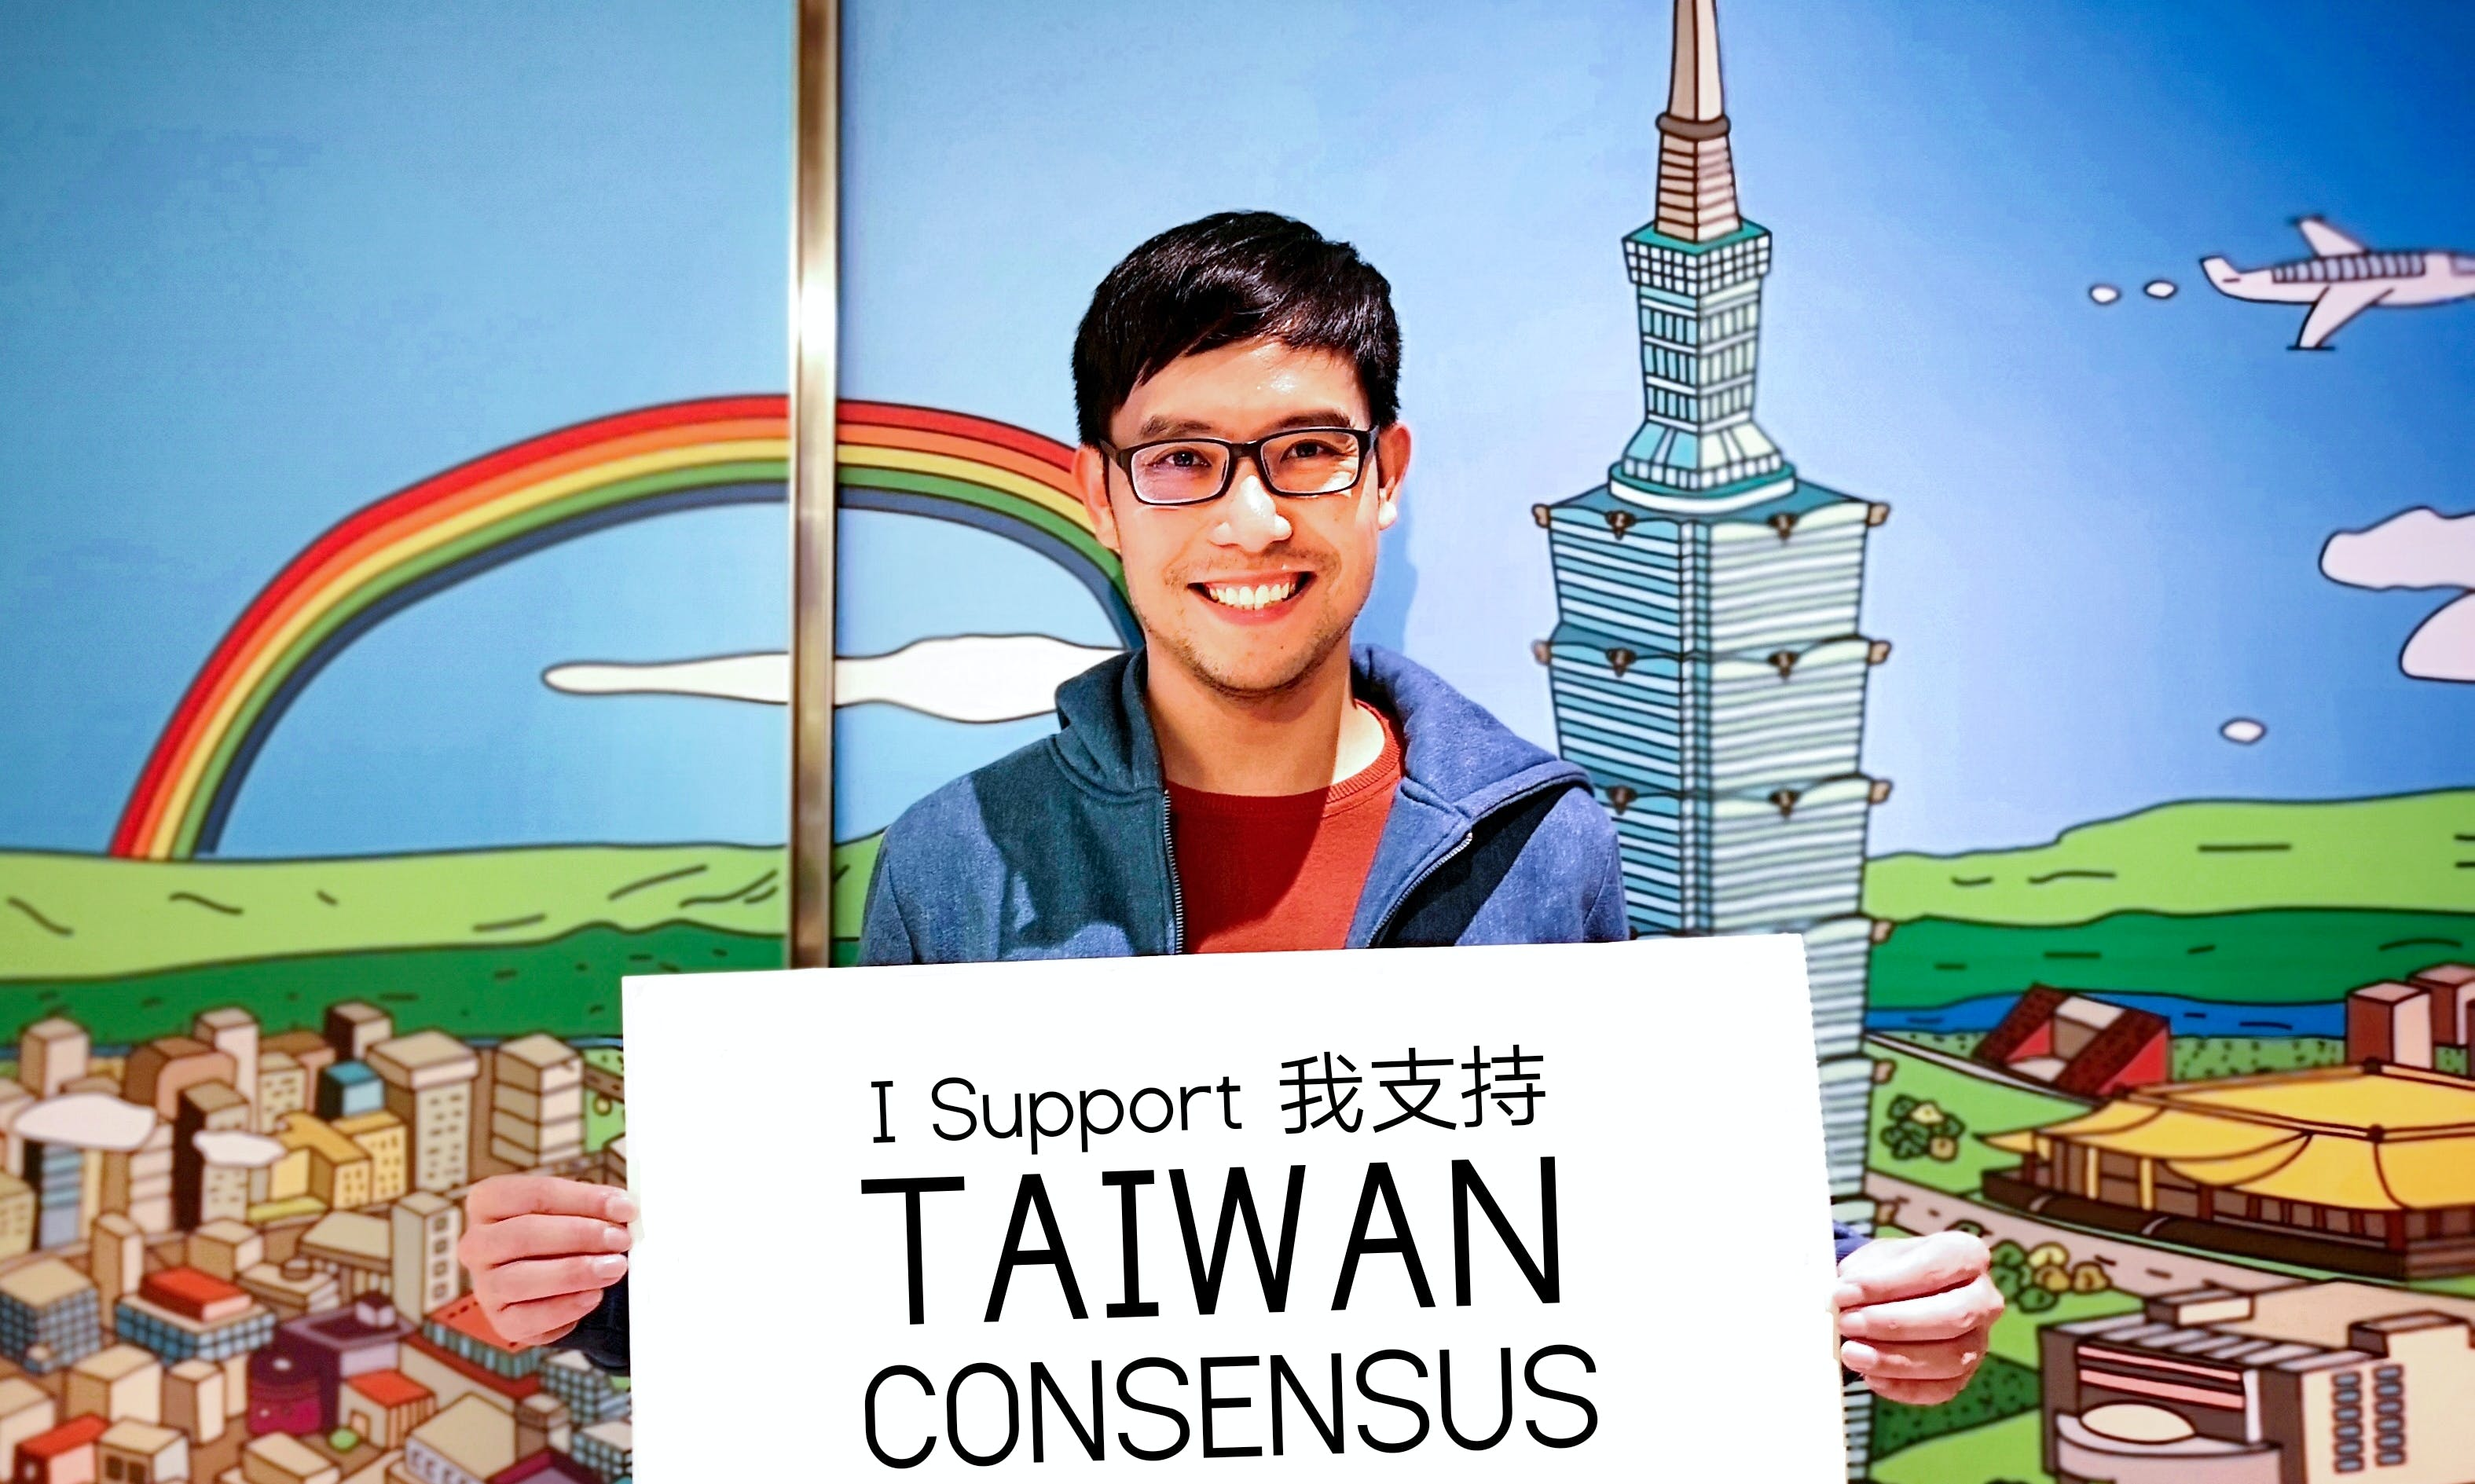 OPINION: Why the World Should Stand With Tsai and the 'Taiwan Consensus'